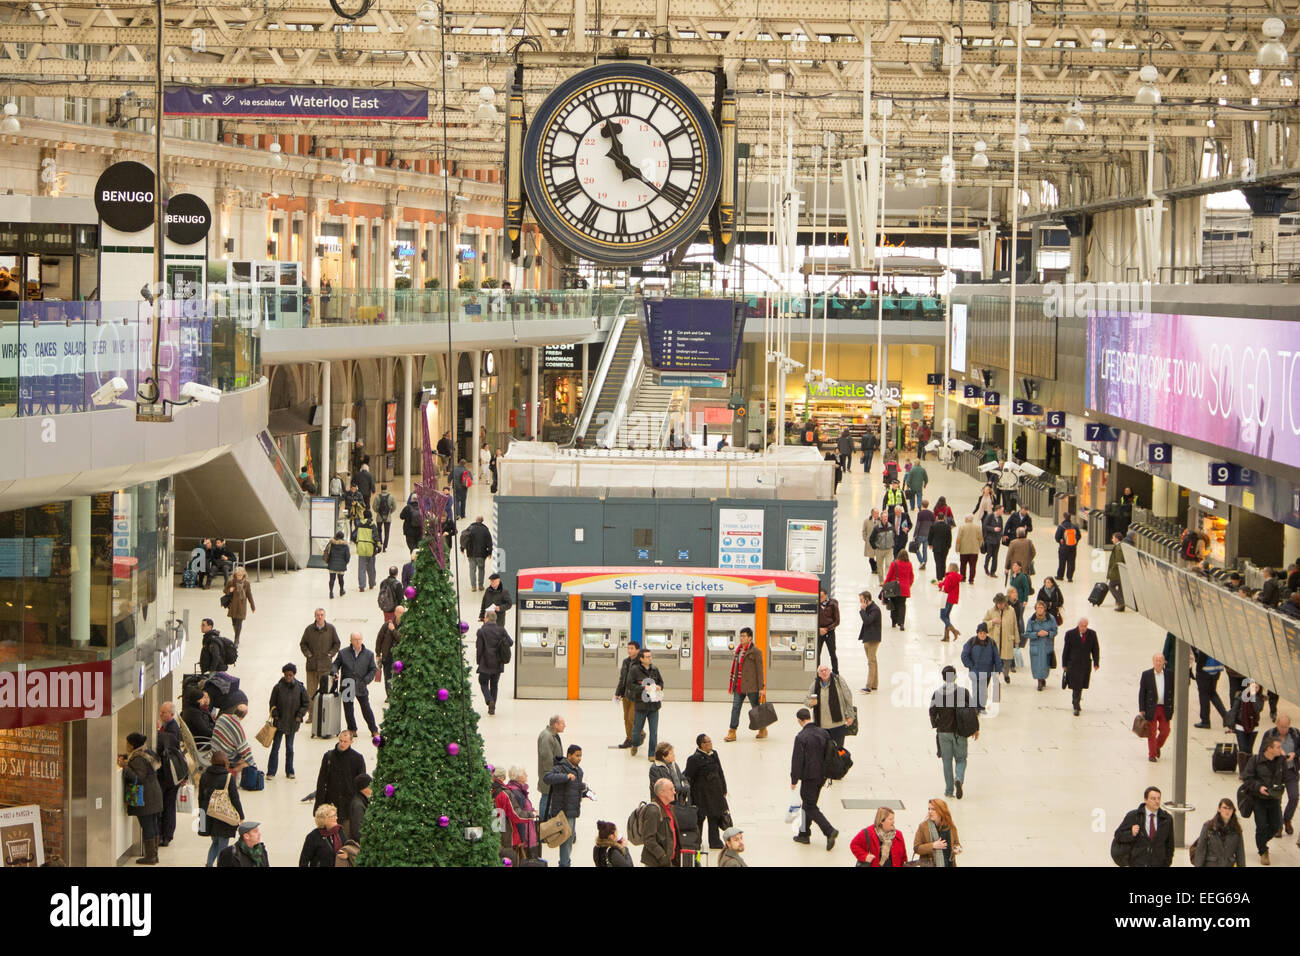 Waterloo Station in London. This is a central London railway terminus and underground station. - Stock Image